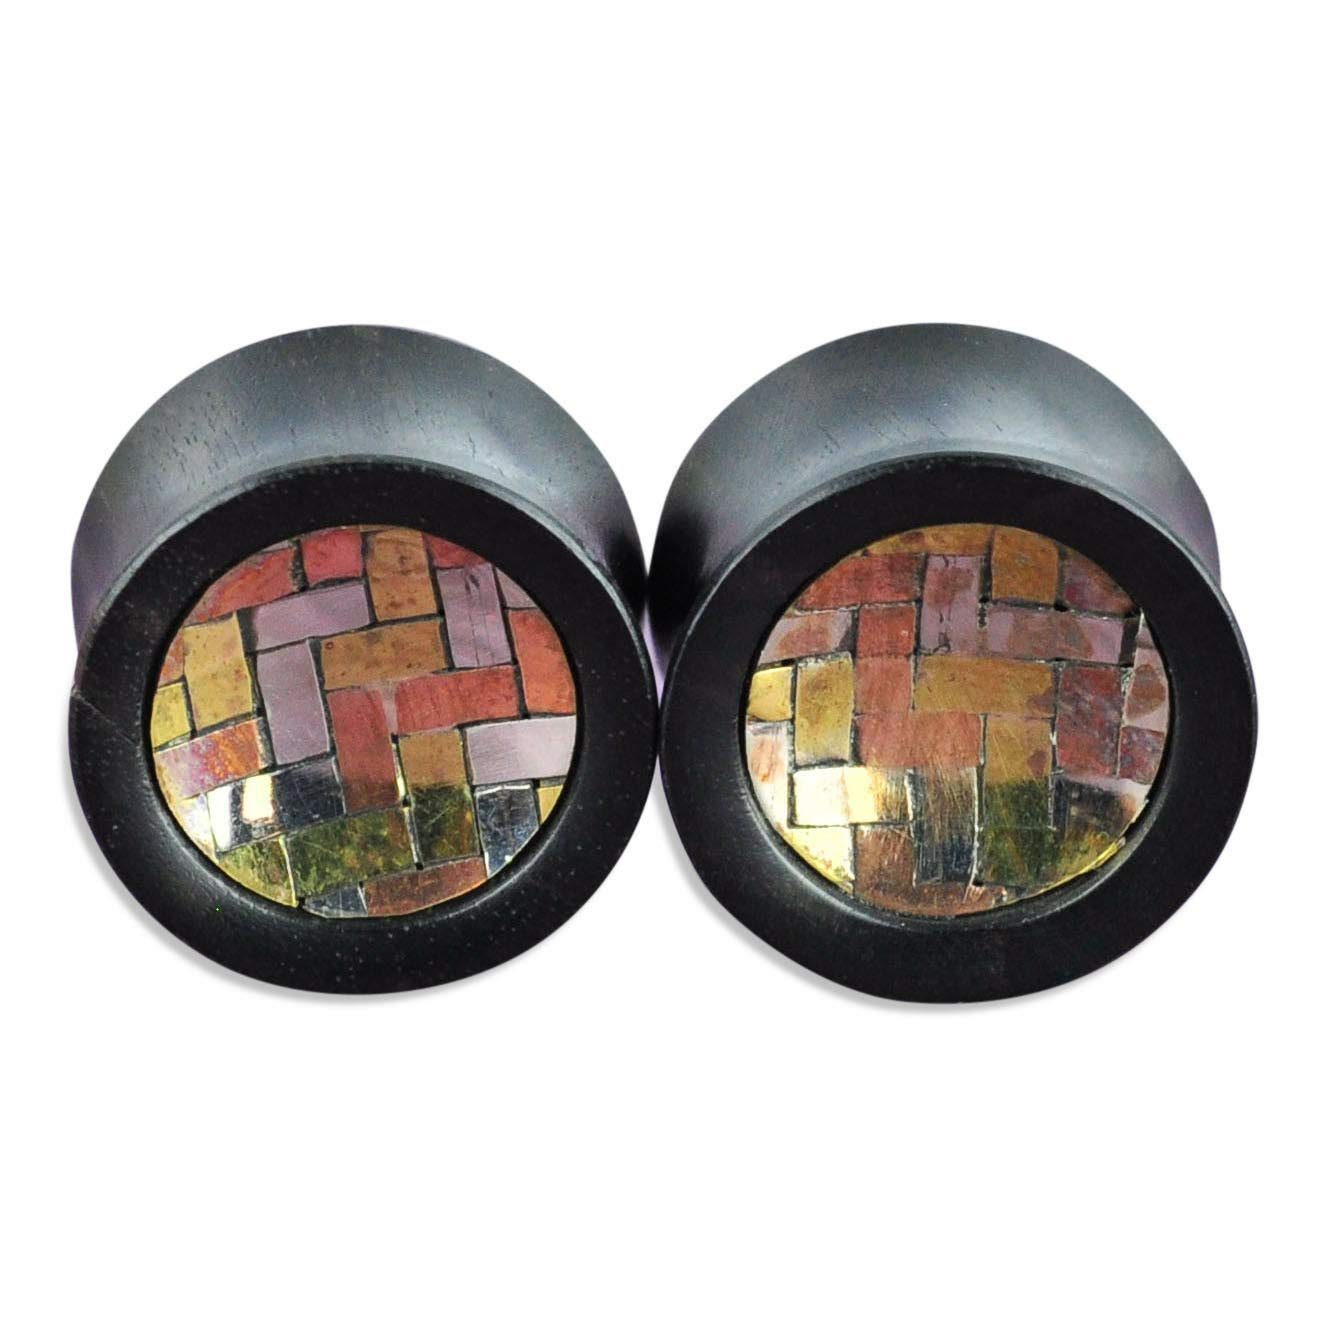 yati_gj 1 Pair Black Areng Wood Plugs with Silver, Brass, and Copper Inlay Ear 12 mm (1/2'')